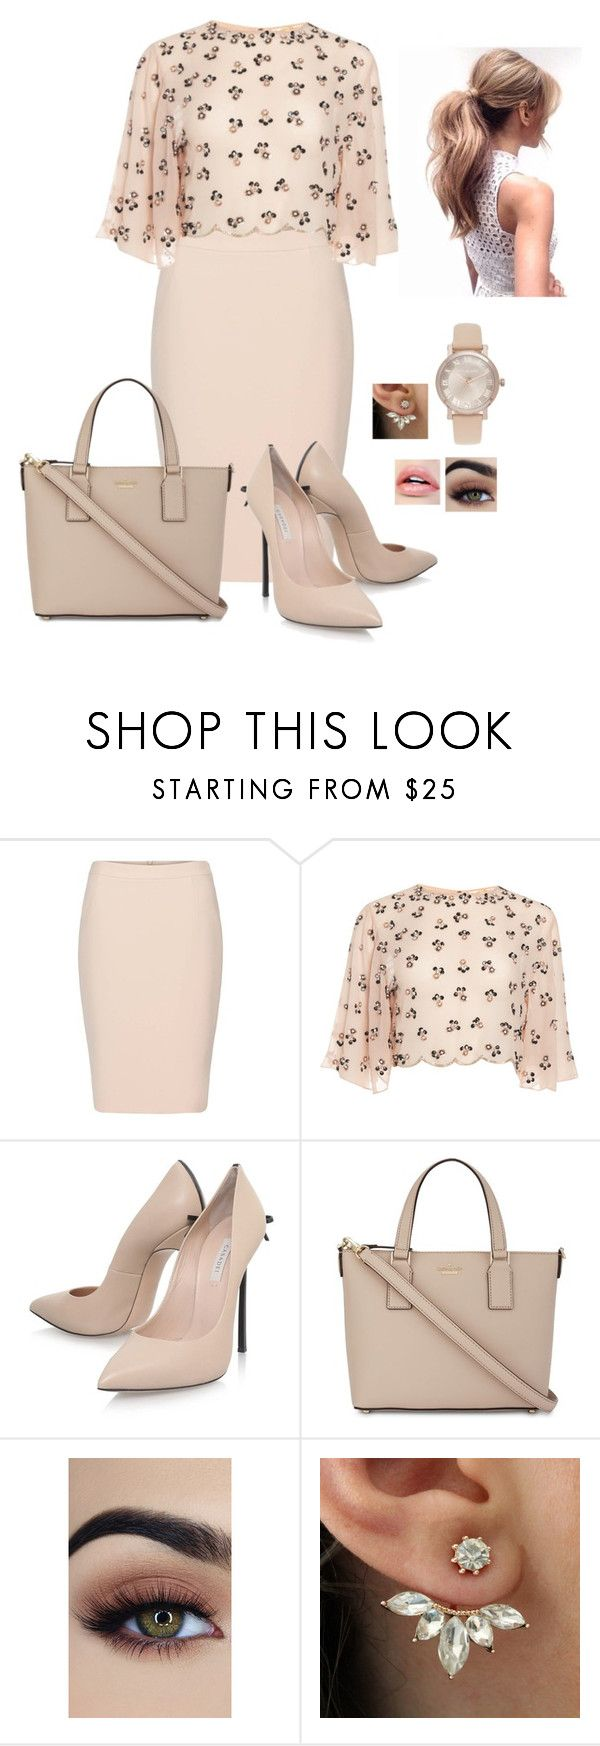 """N/A # 902"" by terra-wendy ❤ liked on Polyvore featuring Casadei, Kate Spade and Michael Kors"